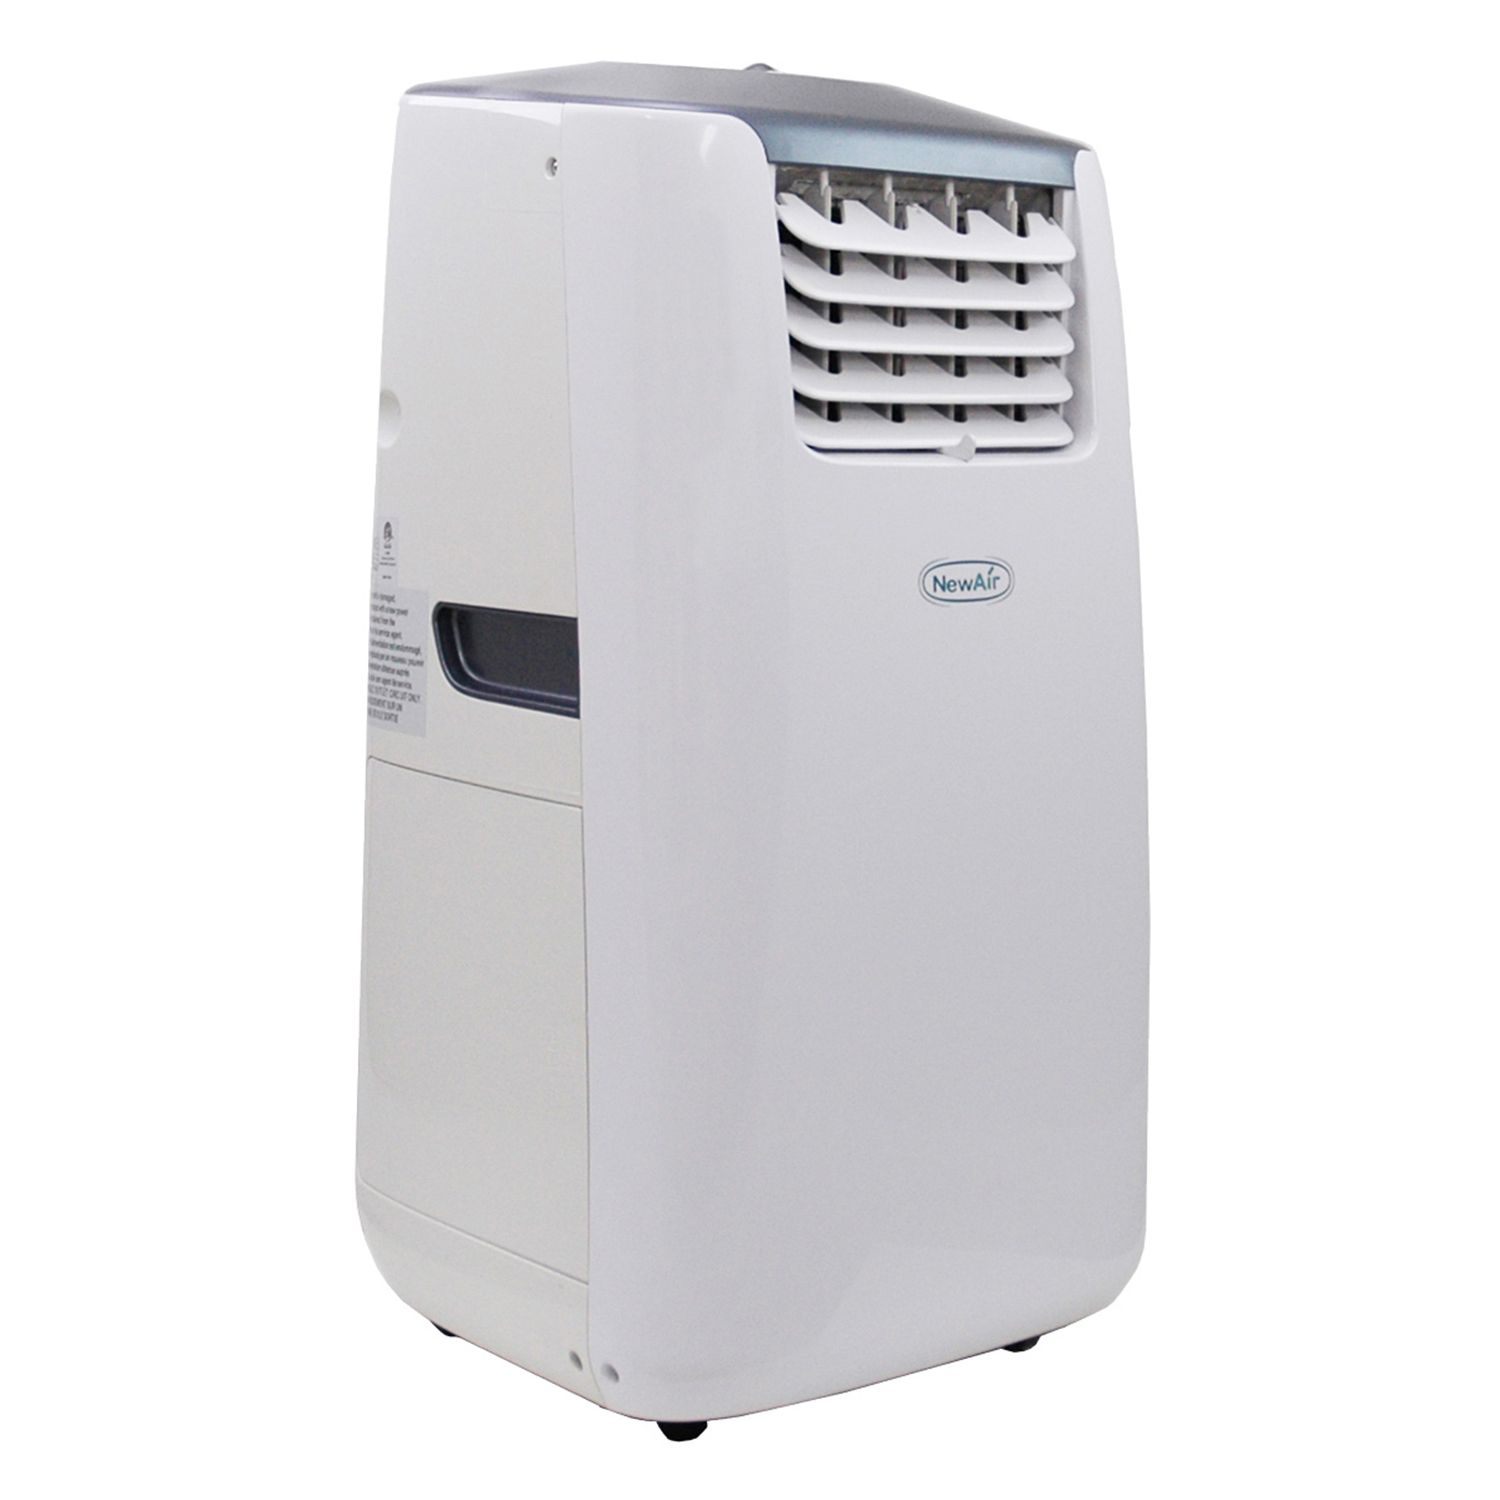 Superb NewAir 14,000 BTU Portable Air Conditioner